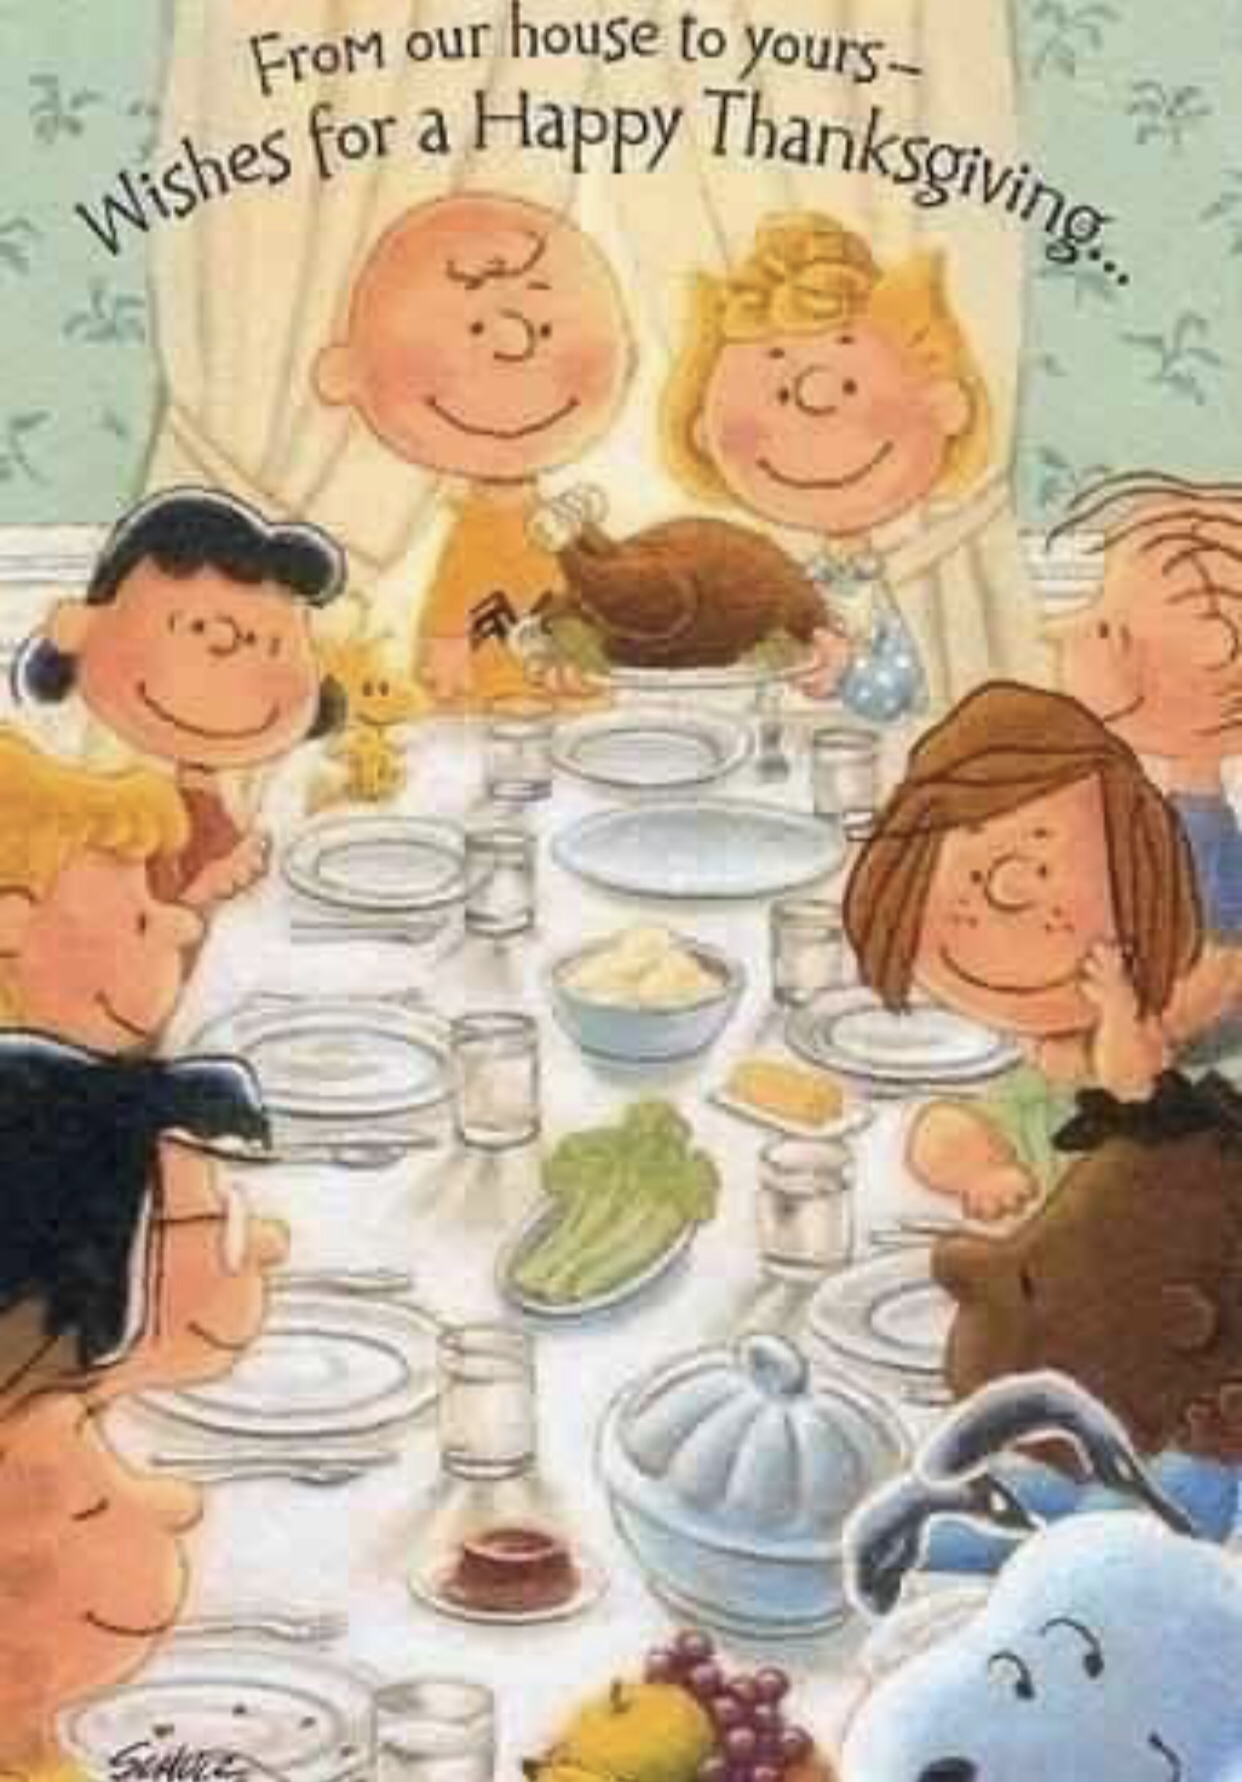 Happy Thanksgiving to all our loved ones here and those in the hereafter.  I thank my God for you all ♥️